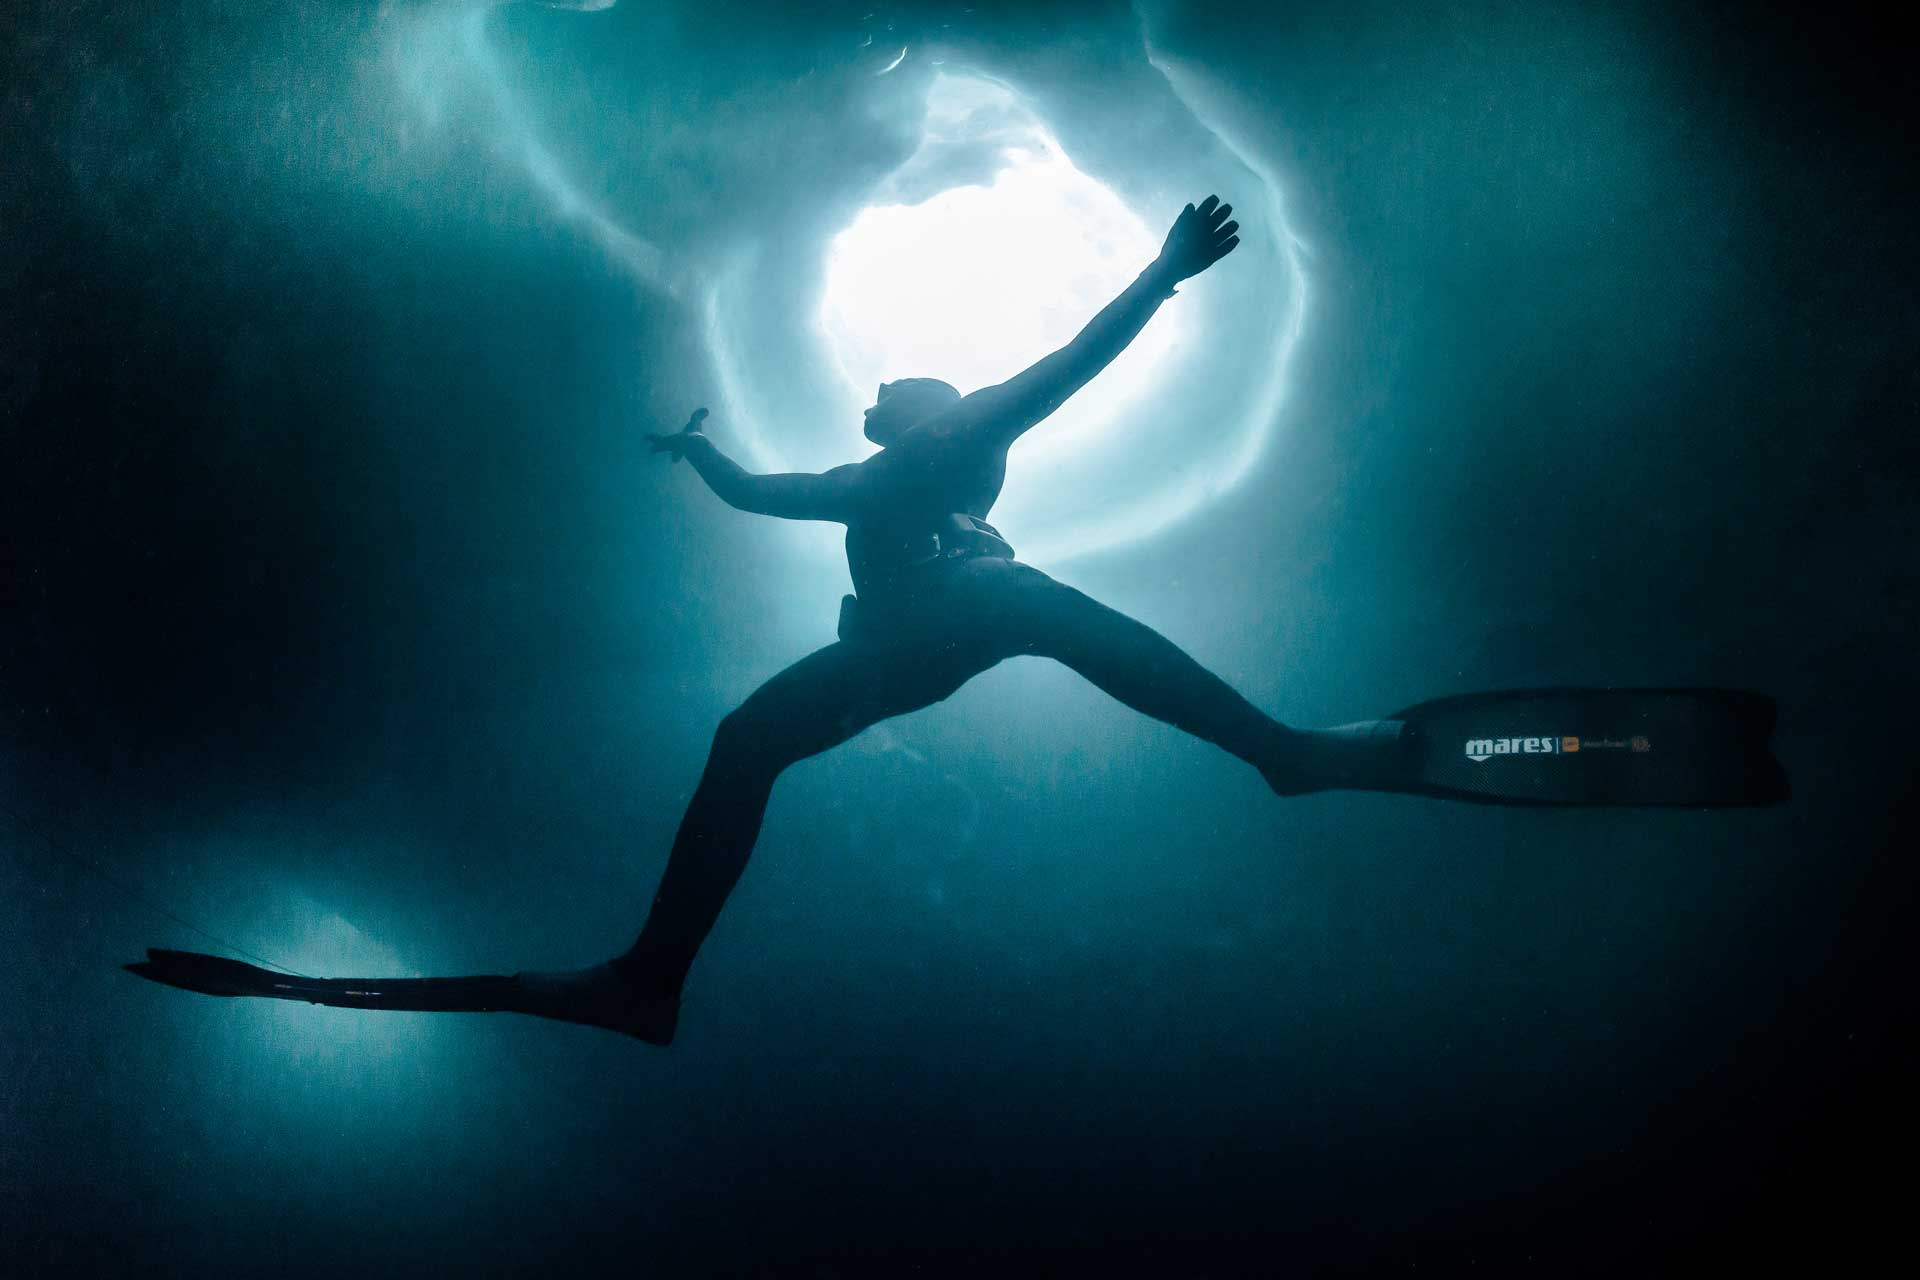 Three amazing places for freediving in cold waters